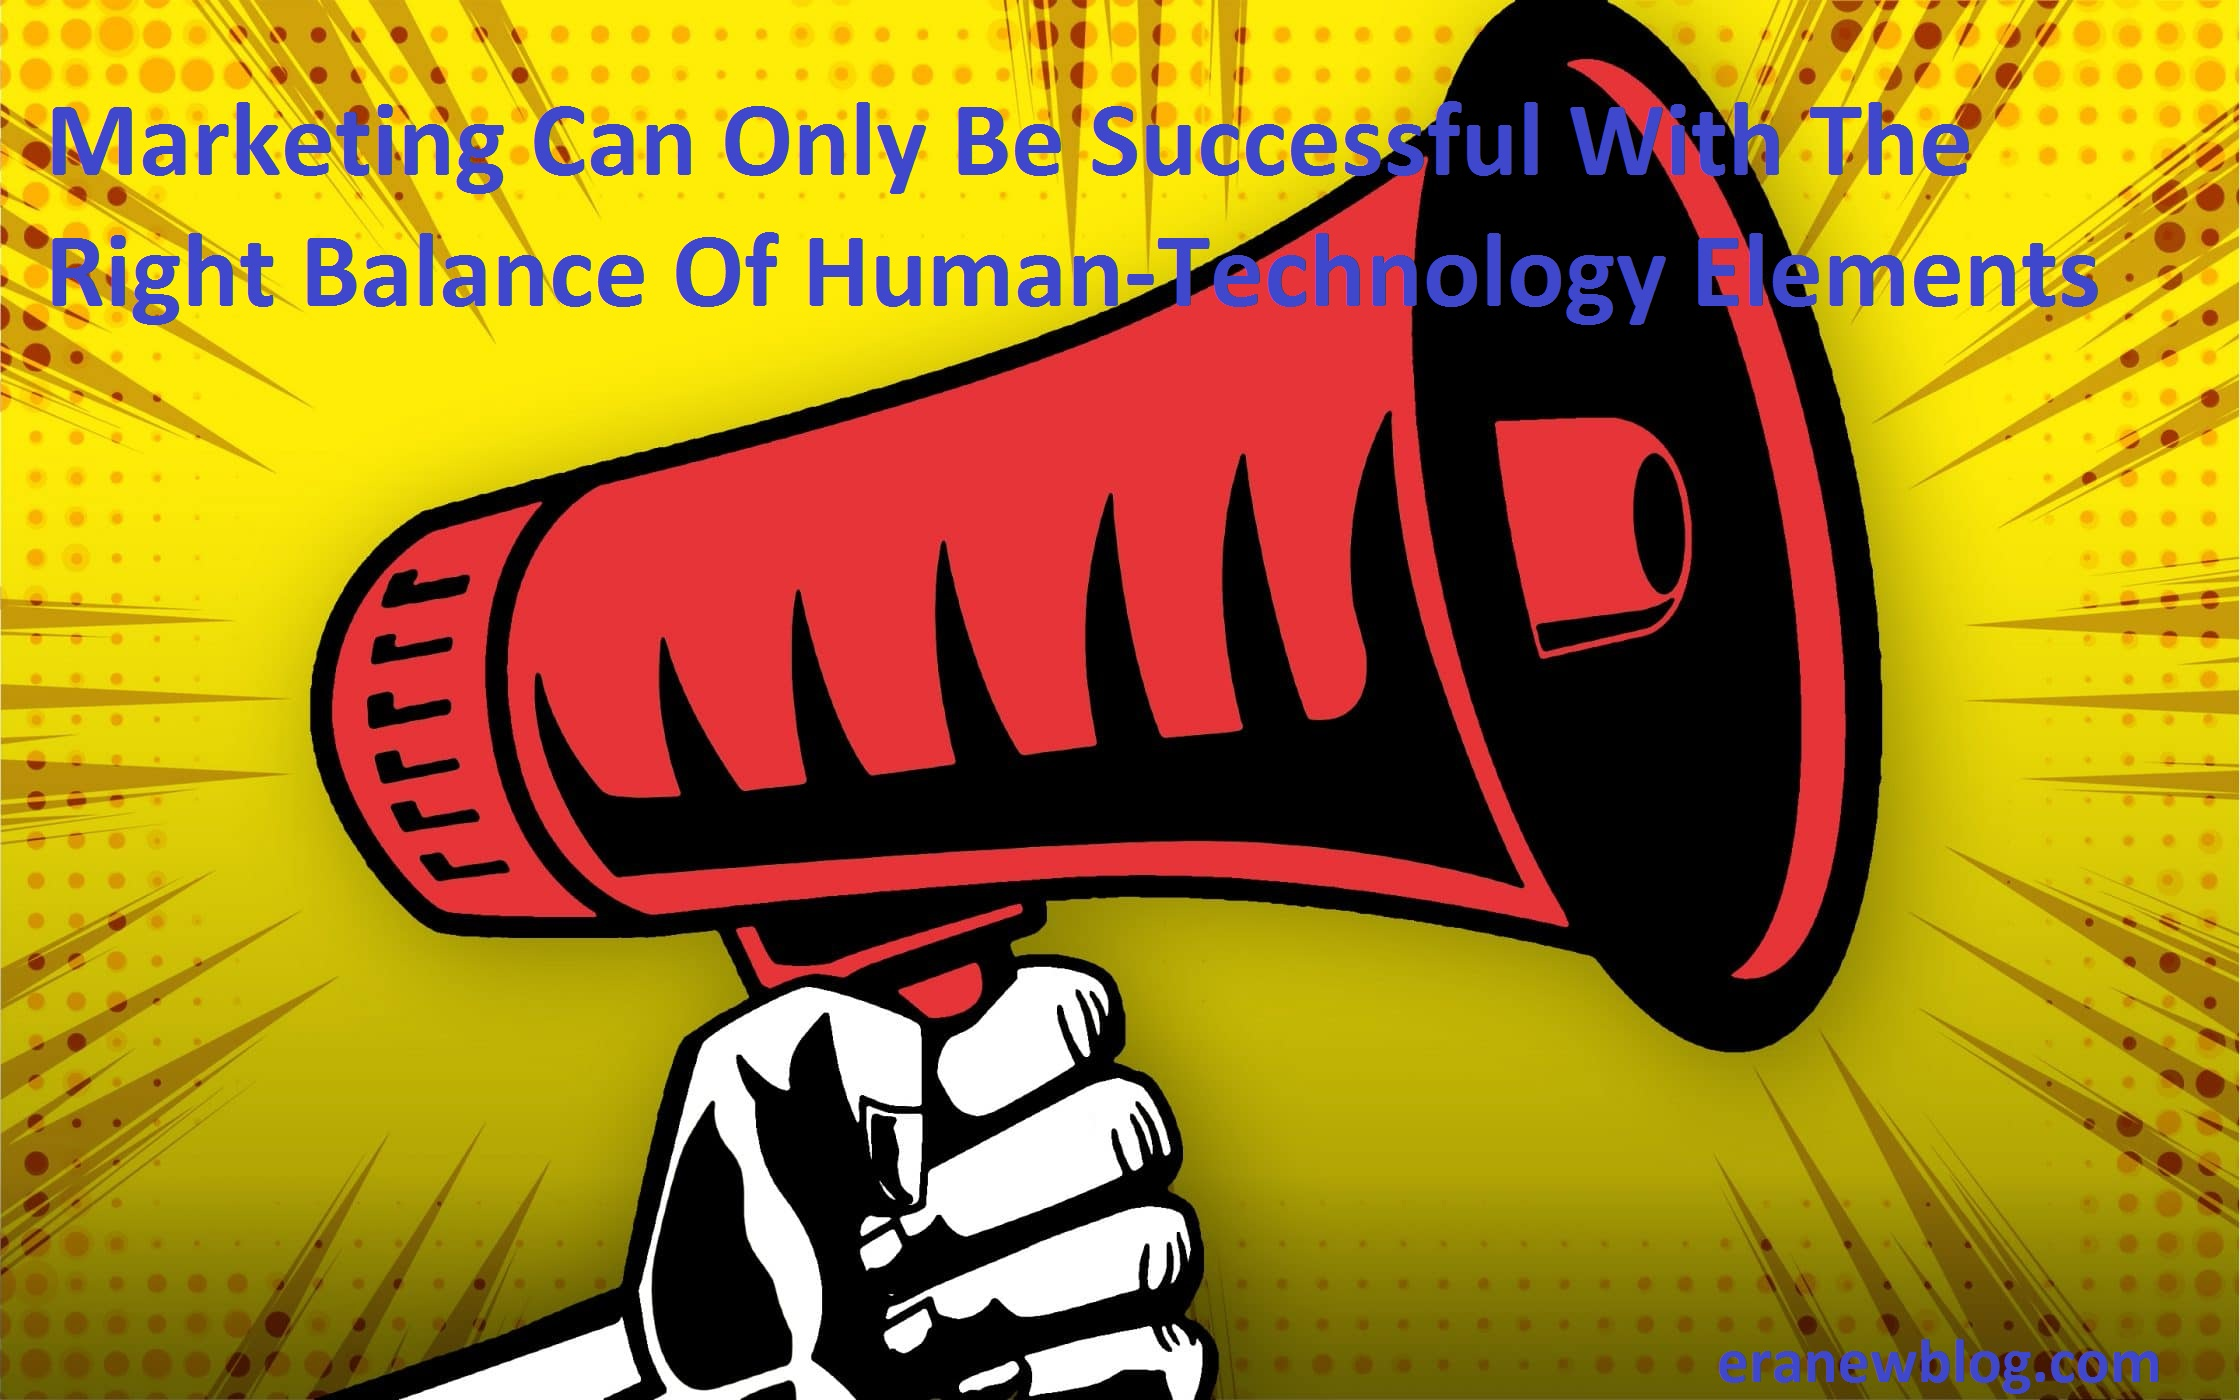 Marketing Can Only Be Successful With The Right Balance Of Human-Technology Elements